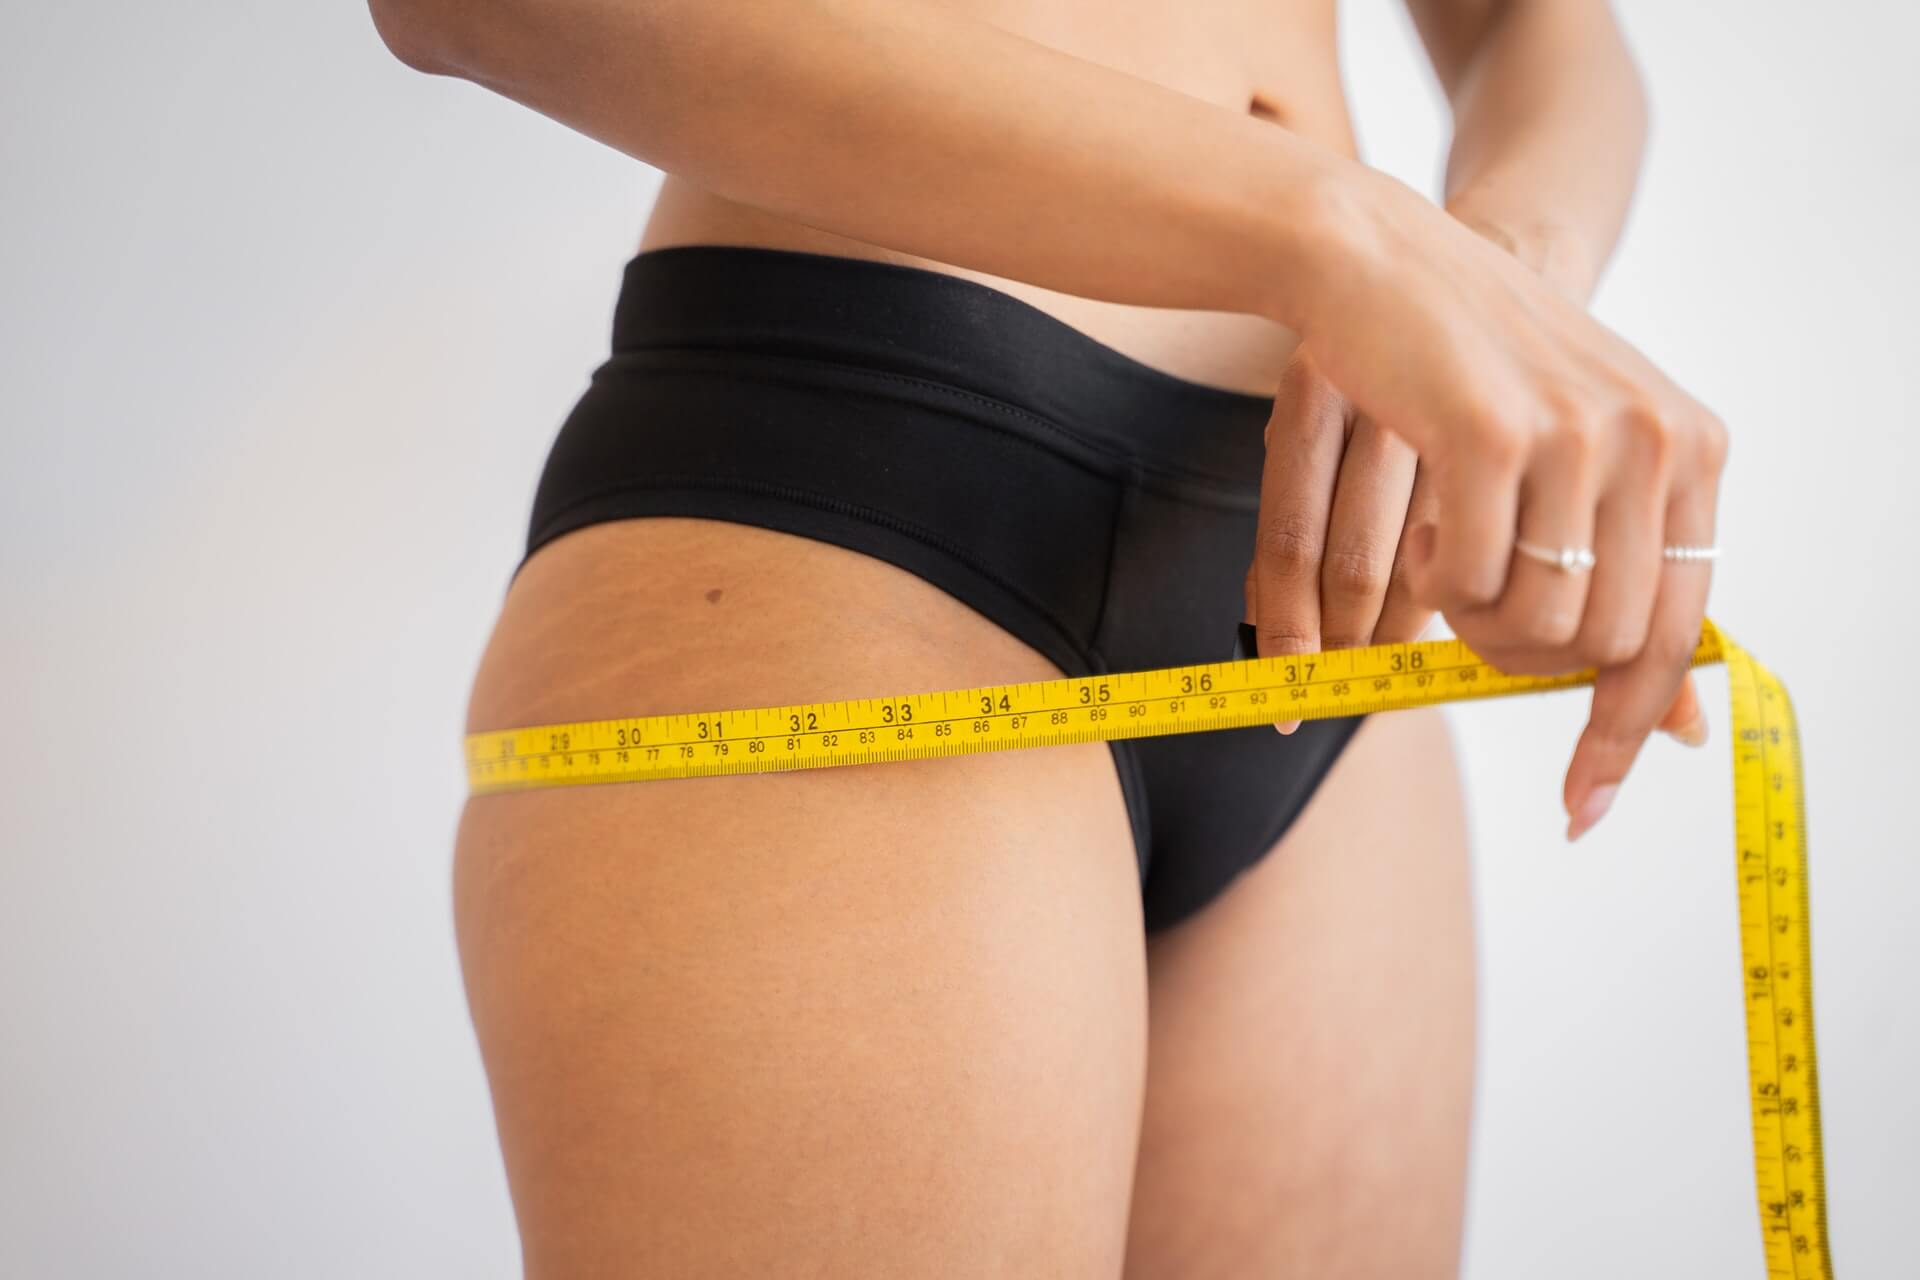 Fact Vs Fiction: Debunking The Myths About Panbesy (Phentermine) And Other Appetite Suppressants